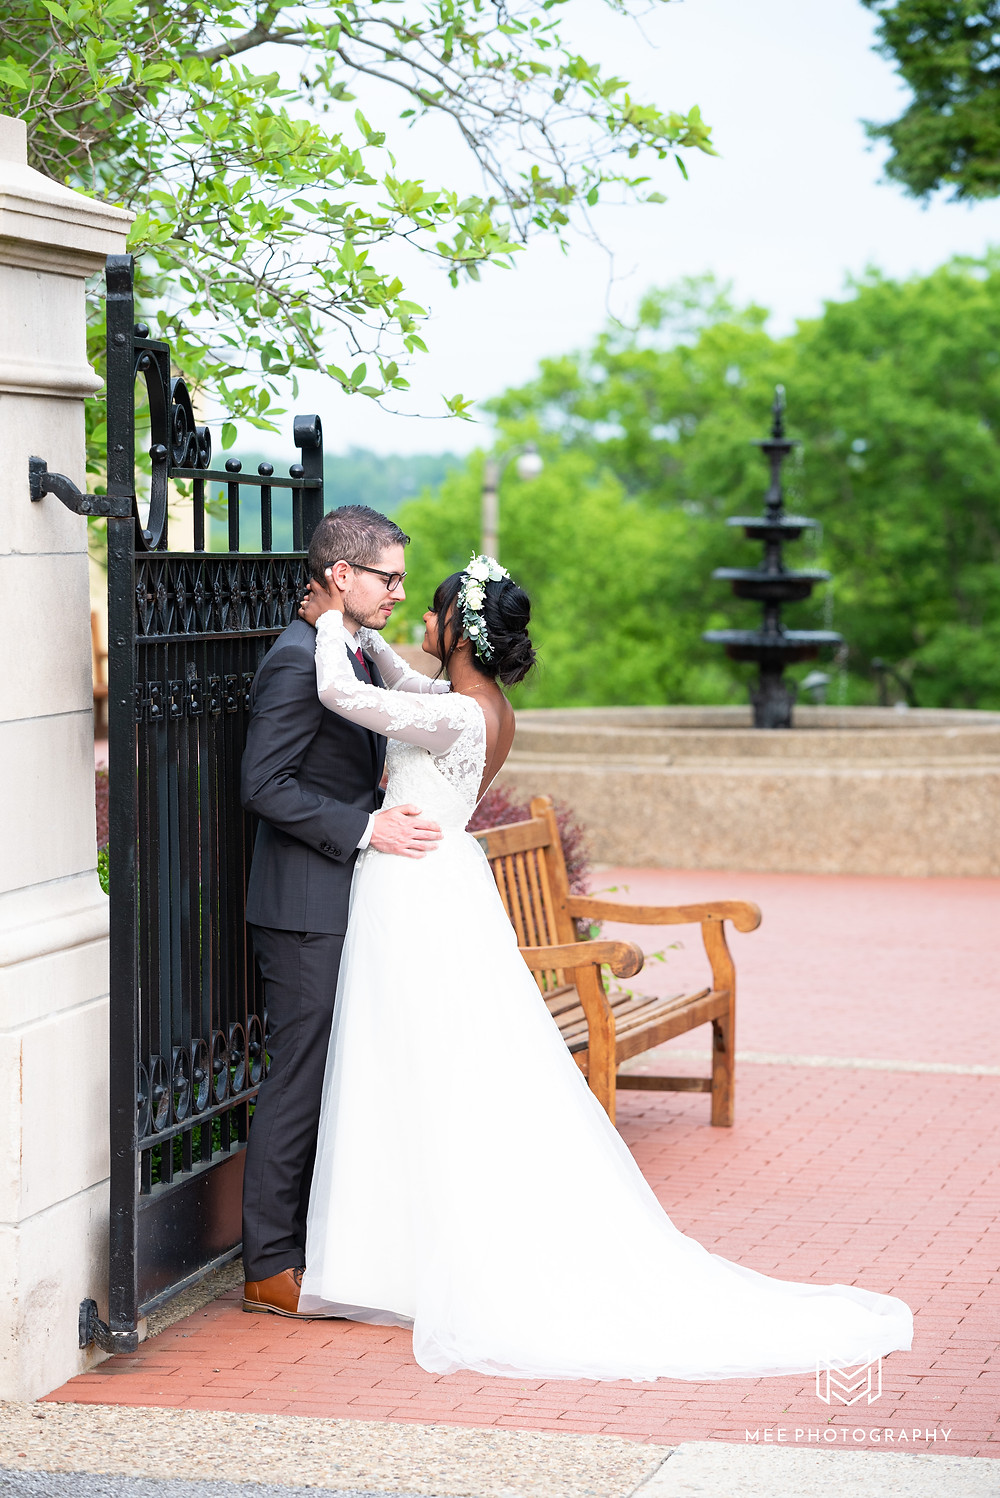 Bride and groom posed in front of iron gate with fountain in the background at Oglebay